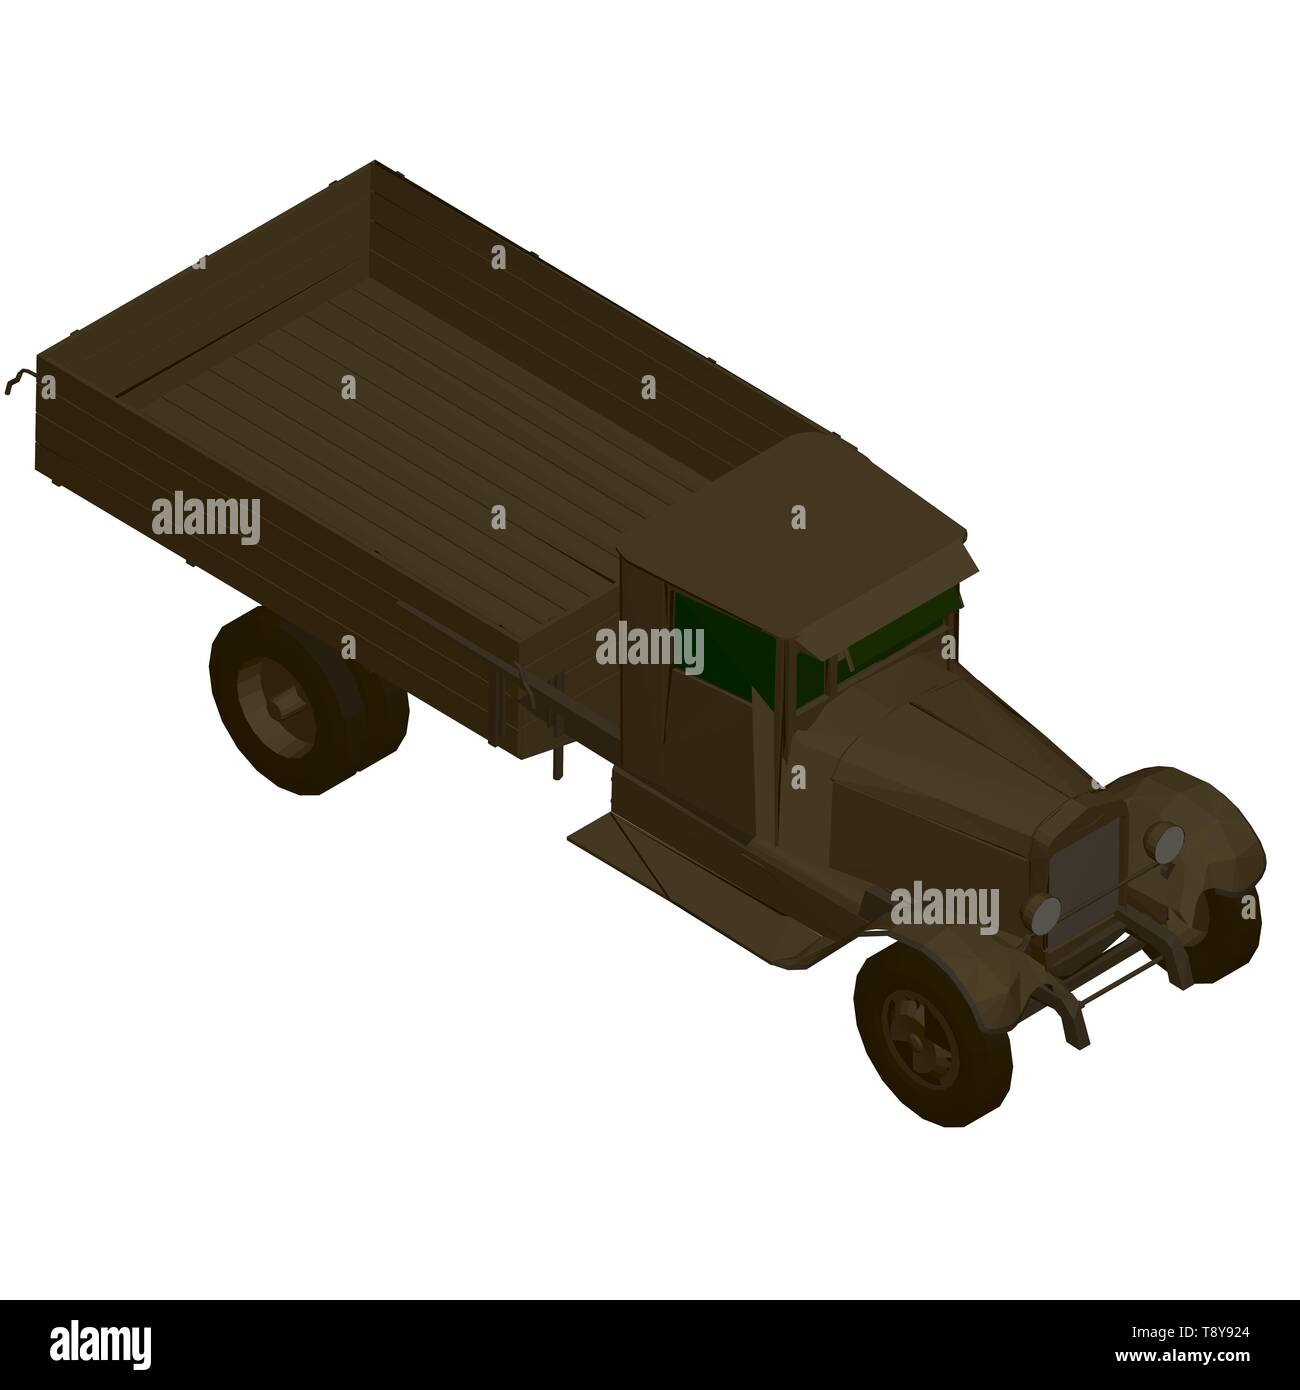 Vector illustration of a vintage truck in brown. 3D. Isometric view - Stock Image